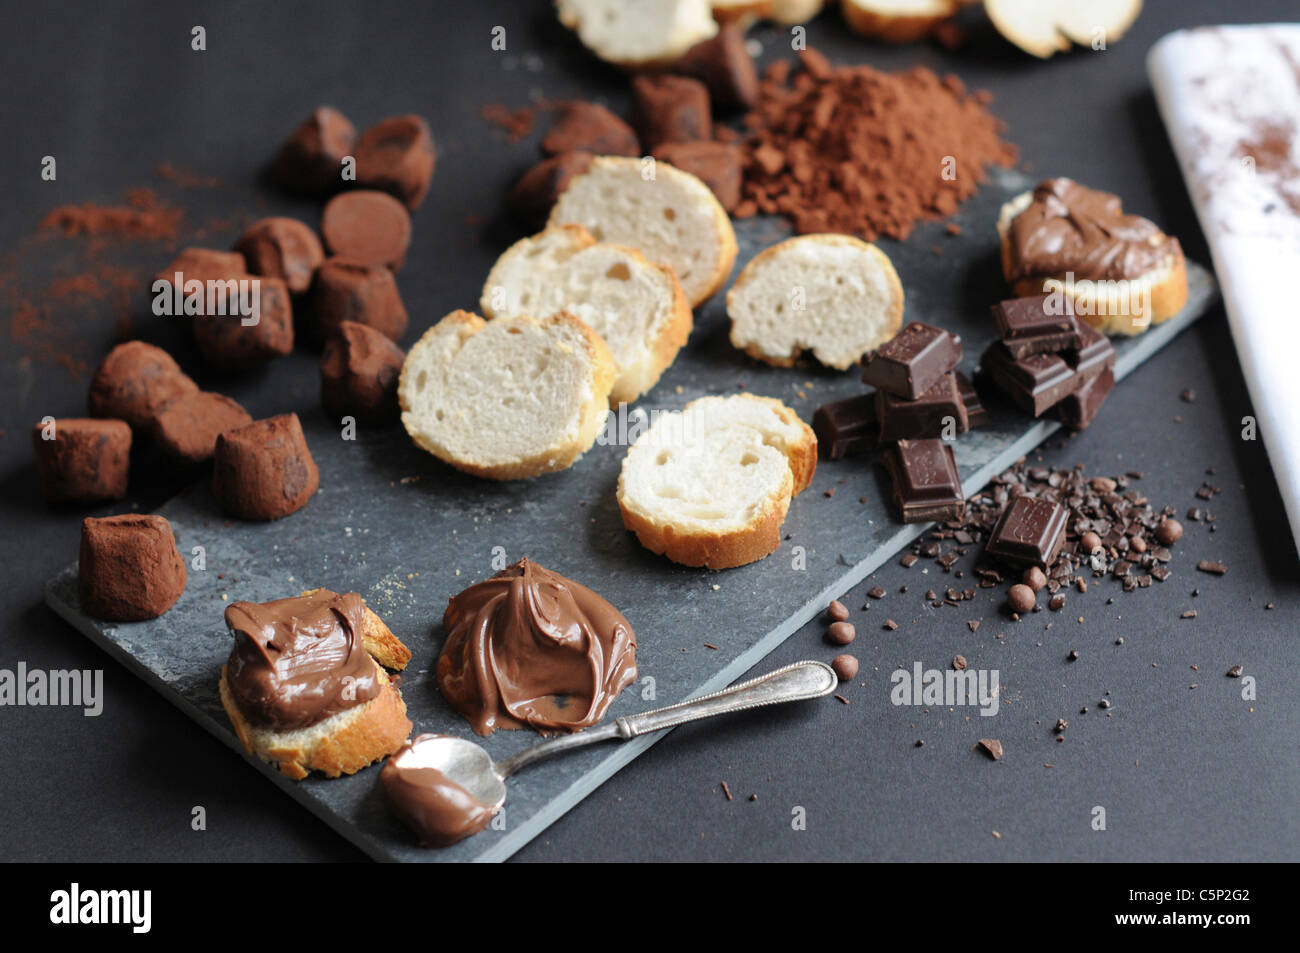 Slices of baguette with chocolate cream, chocolate pieces and truffles, cokoa powder - Stock Image